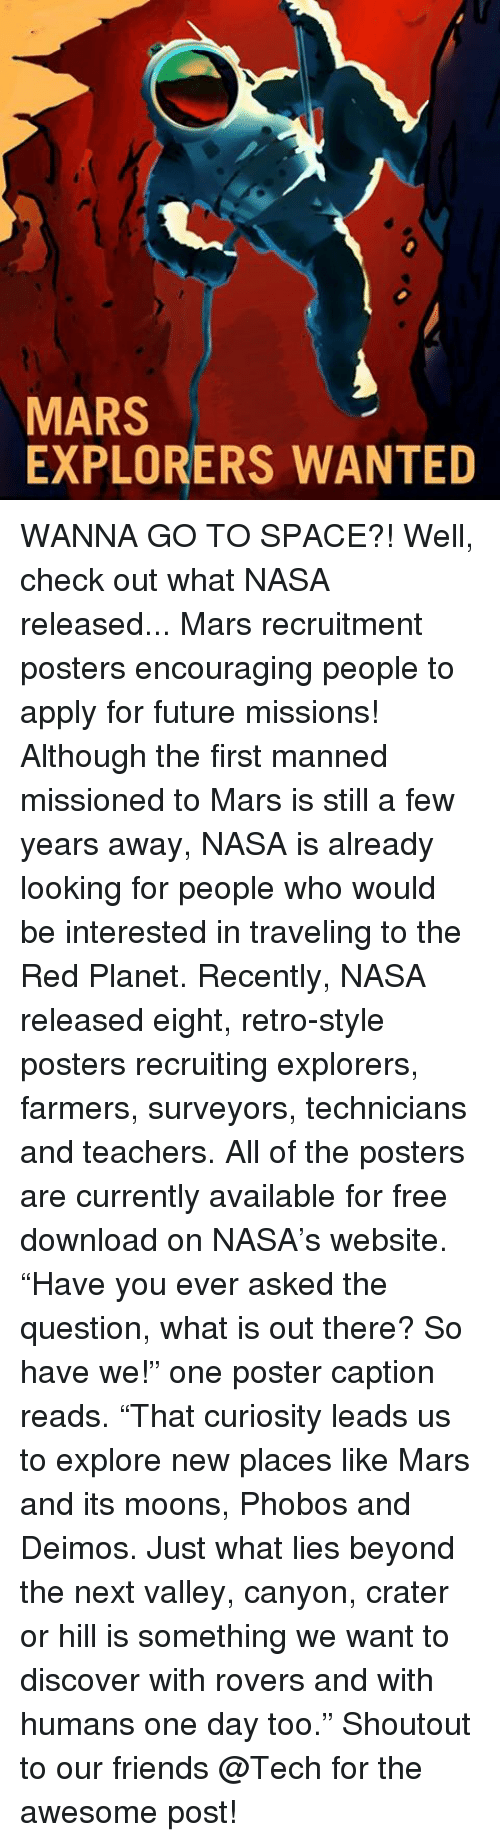 """explorers: MARS  EXPLORERS WANTED WANNA GO TO SPACE?! Well, check out what NASA released... Mars recruitment posters encouraging people to apply for future missions! Although the first manned missioned to Mars is still a few years away, NASA is already looking for people who would be interested in traveling to the Red Planet. Recently, NASA released eight, retro-style posters recruiting explorers, farmers, surveyors, technicians and teachers. All of the posters are currently available for free download on NASA's website. """"Have you ever asked the question, what is out there? So have we!"""" one poster caption reads. """"That curiosity leads us to explore new places like Mars and its moons, Phobos and Deimos. Just what lies beyond the next valley, canyon, crater or hill is something we want to discover with rovers and with humans one day too."""" Shoutout to our friends @Tech for the awesome post!"""